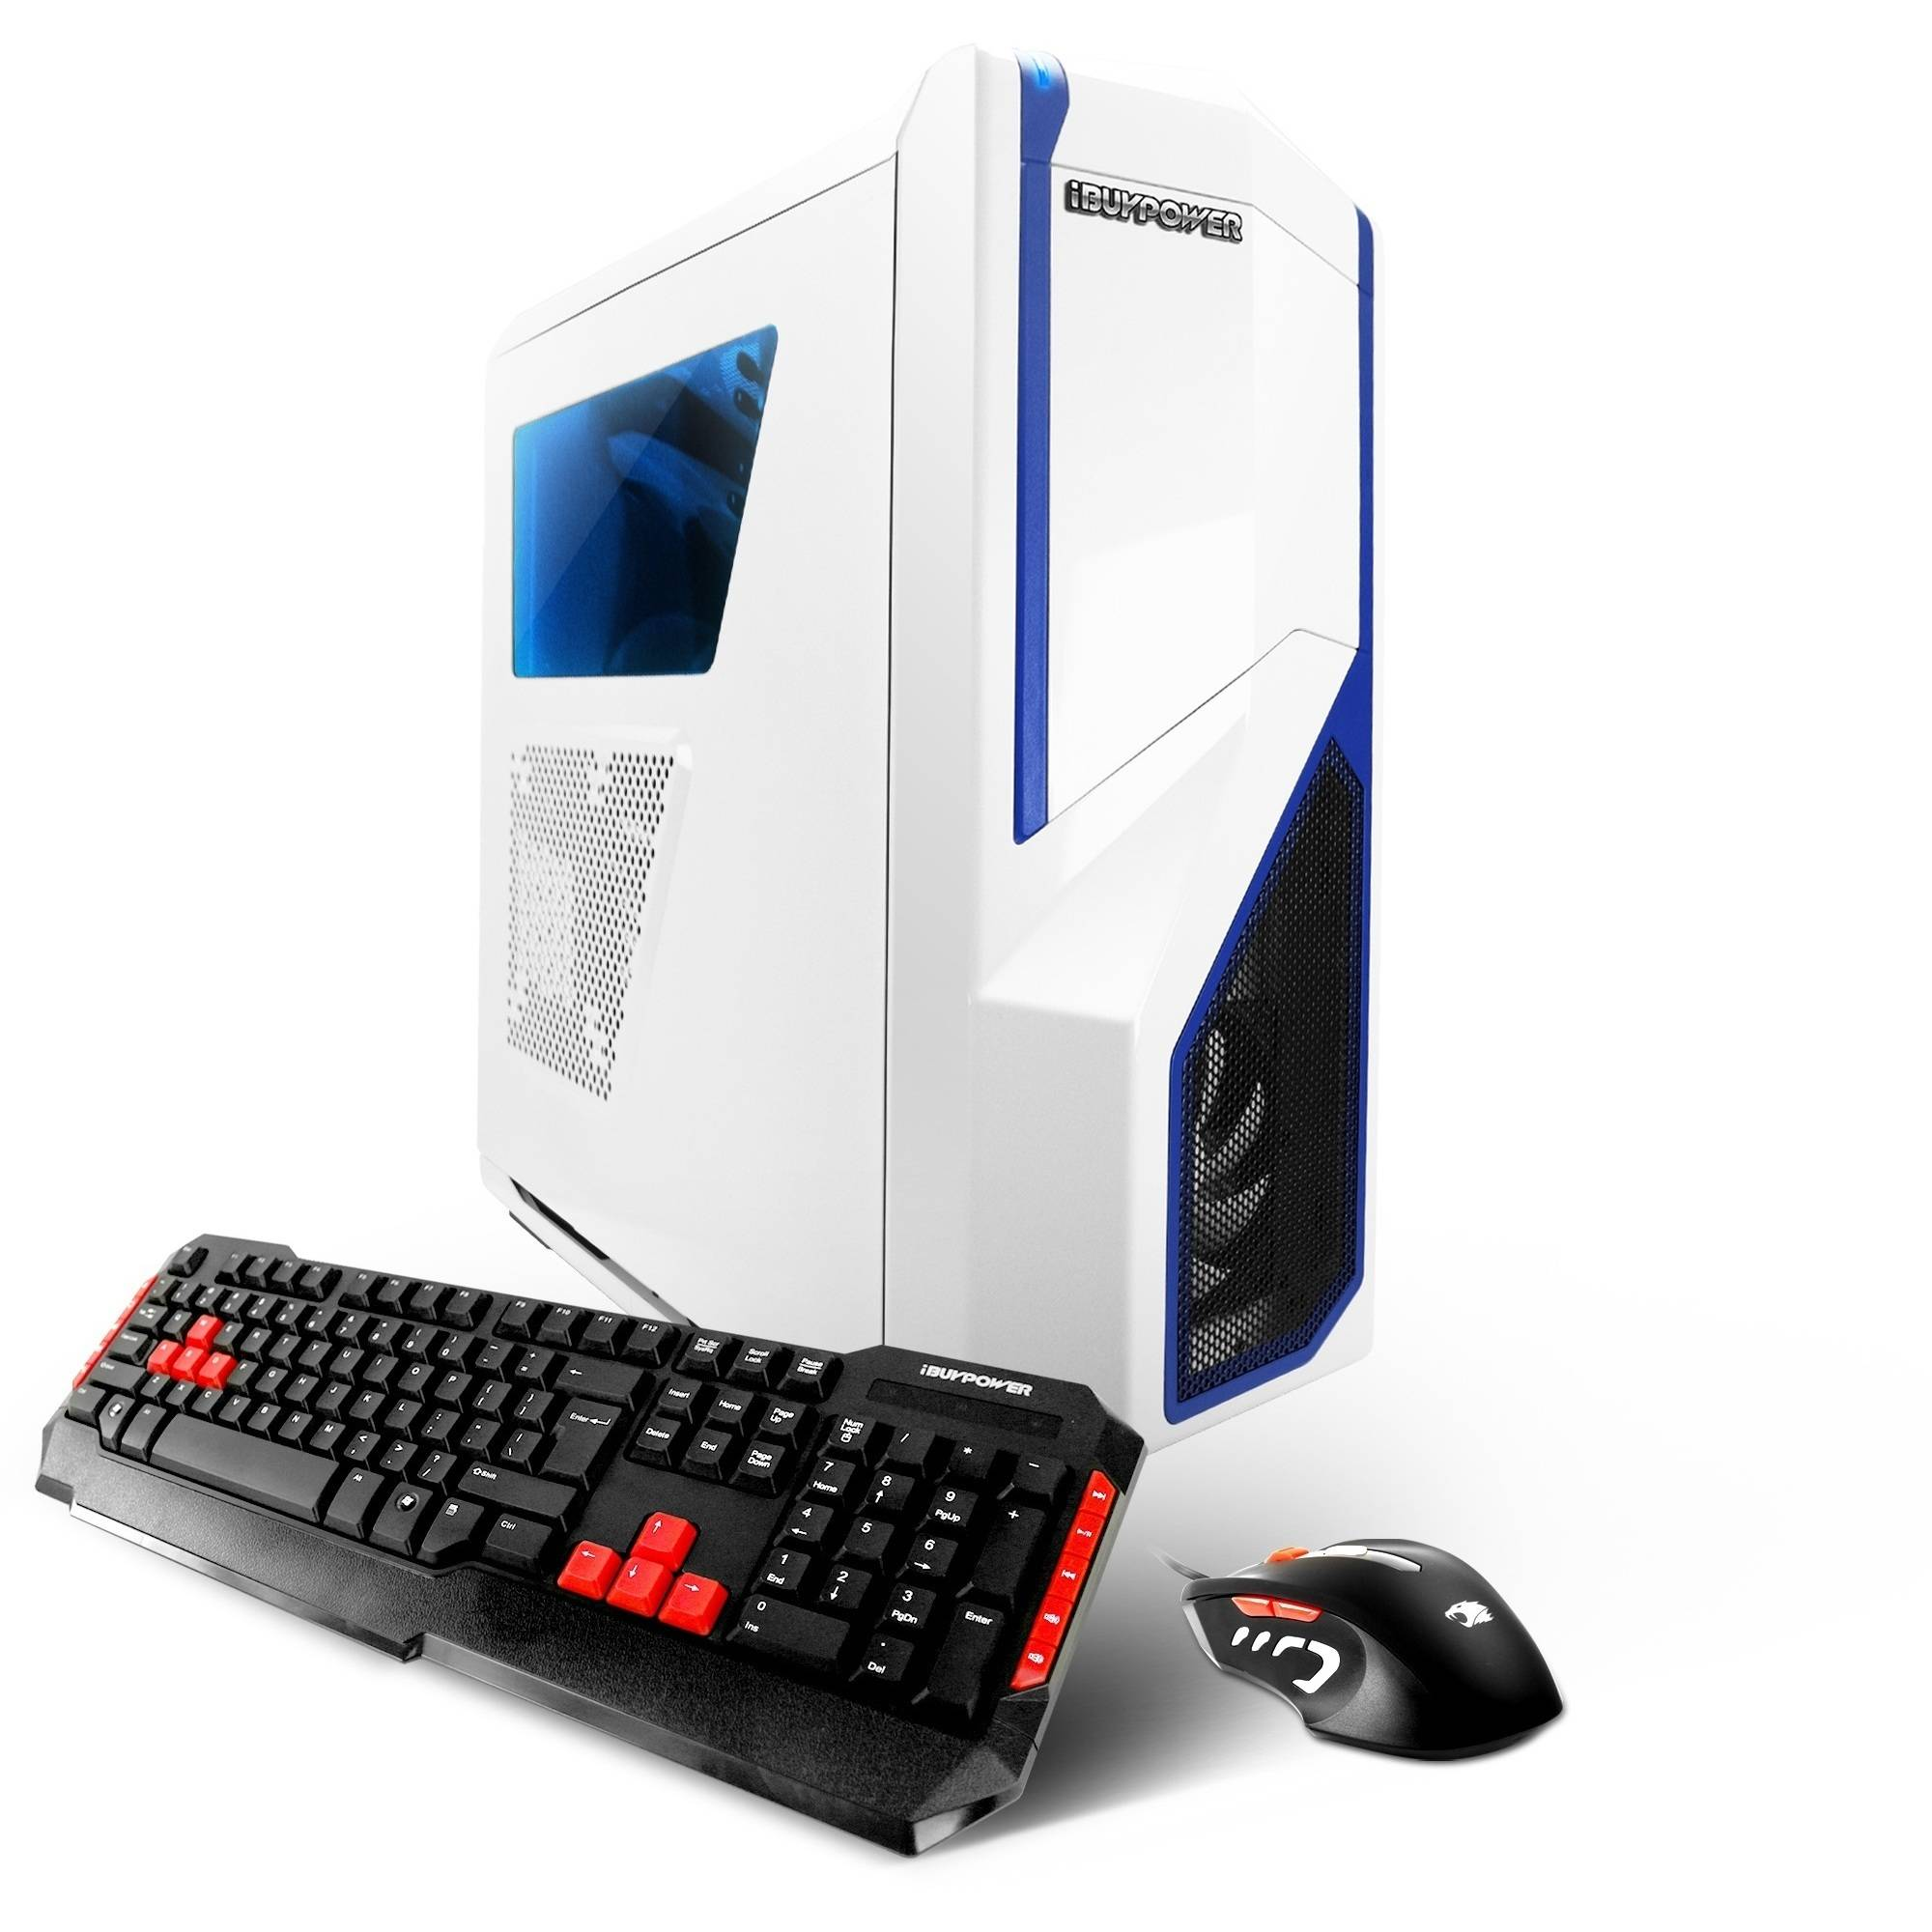 iBUYPOWER Phantom Gamer WA802 Gaming Desktop PC with AMD Vishera FX - 6300 Processor, 8GB Memory, 1TB Hard Drive and Windows 10 Home (Monitor Not Included)